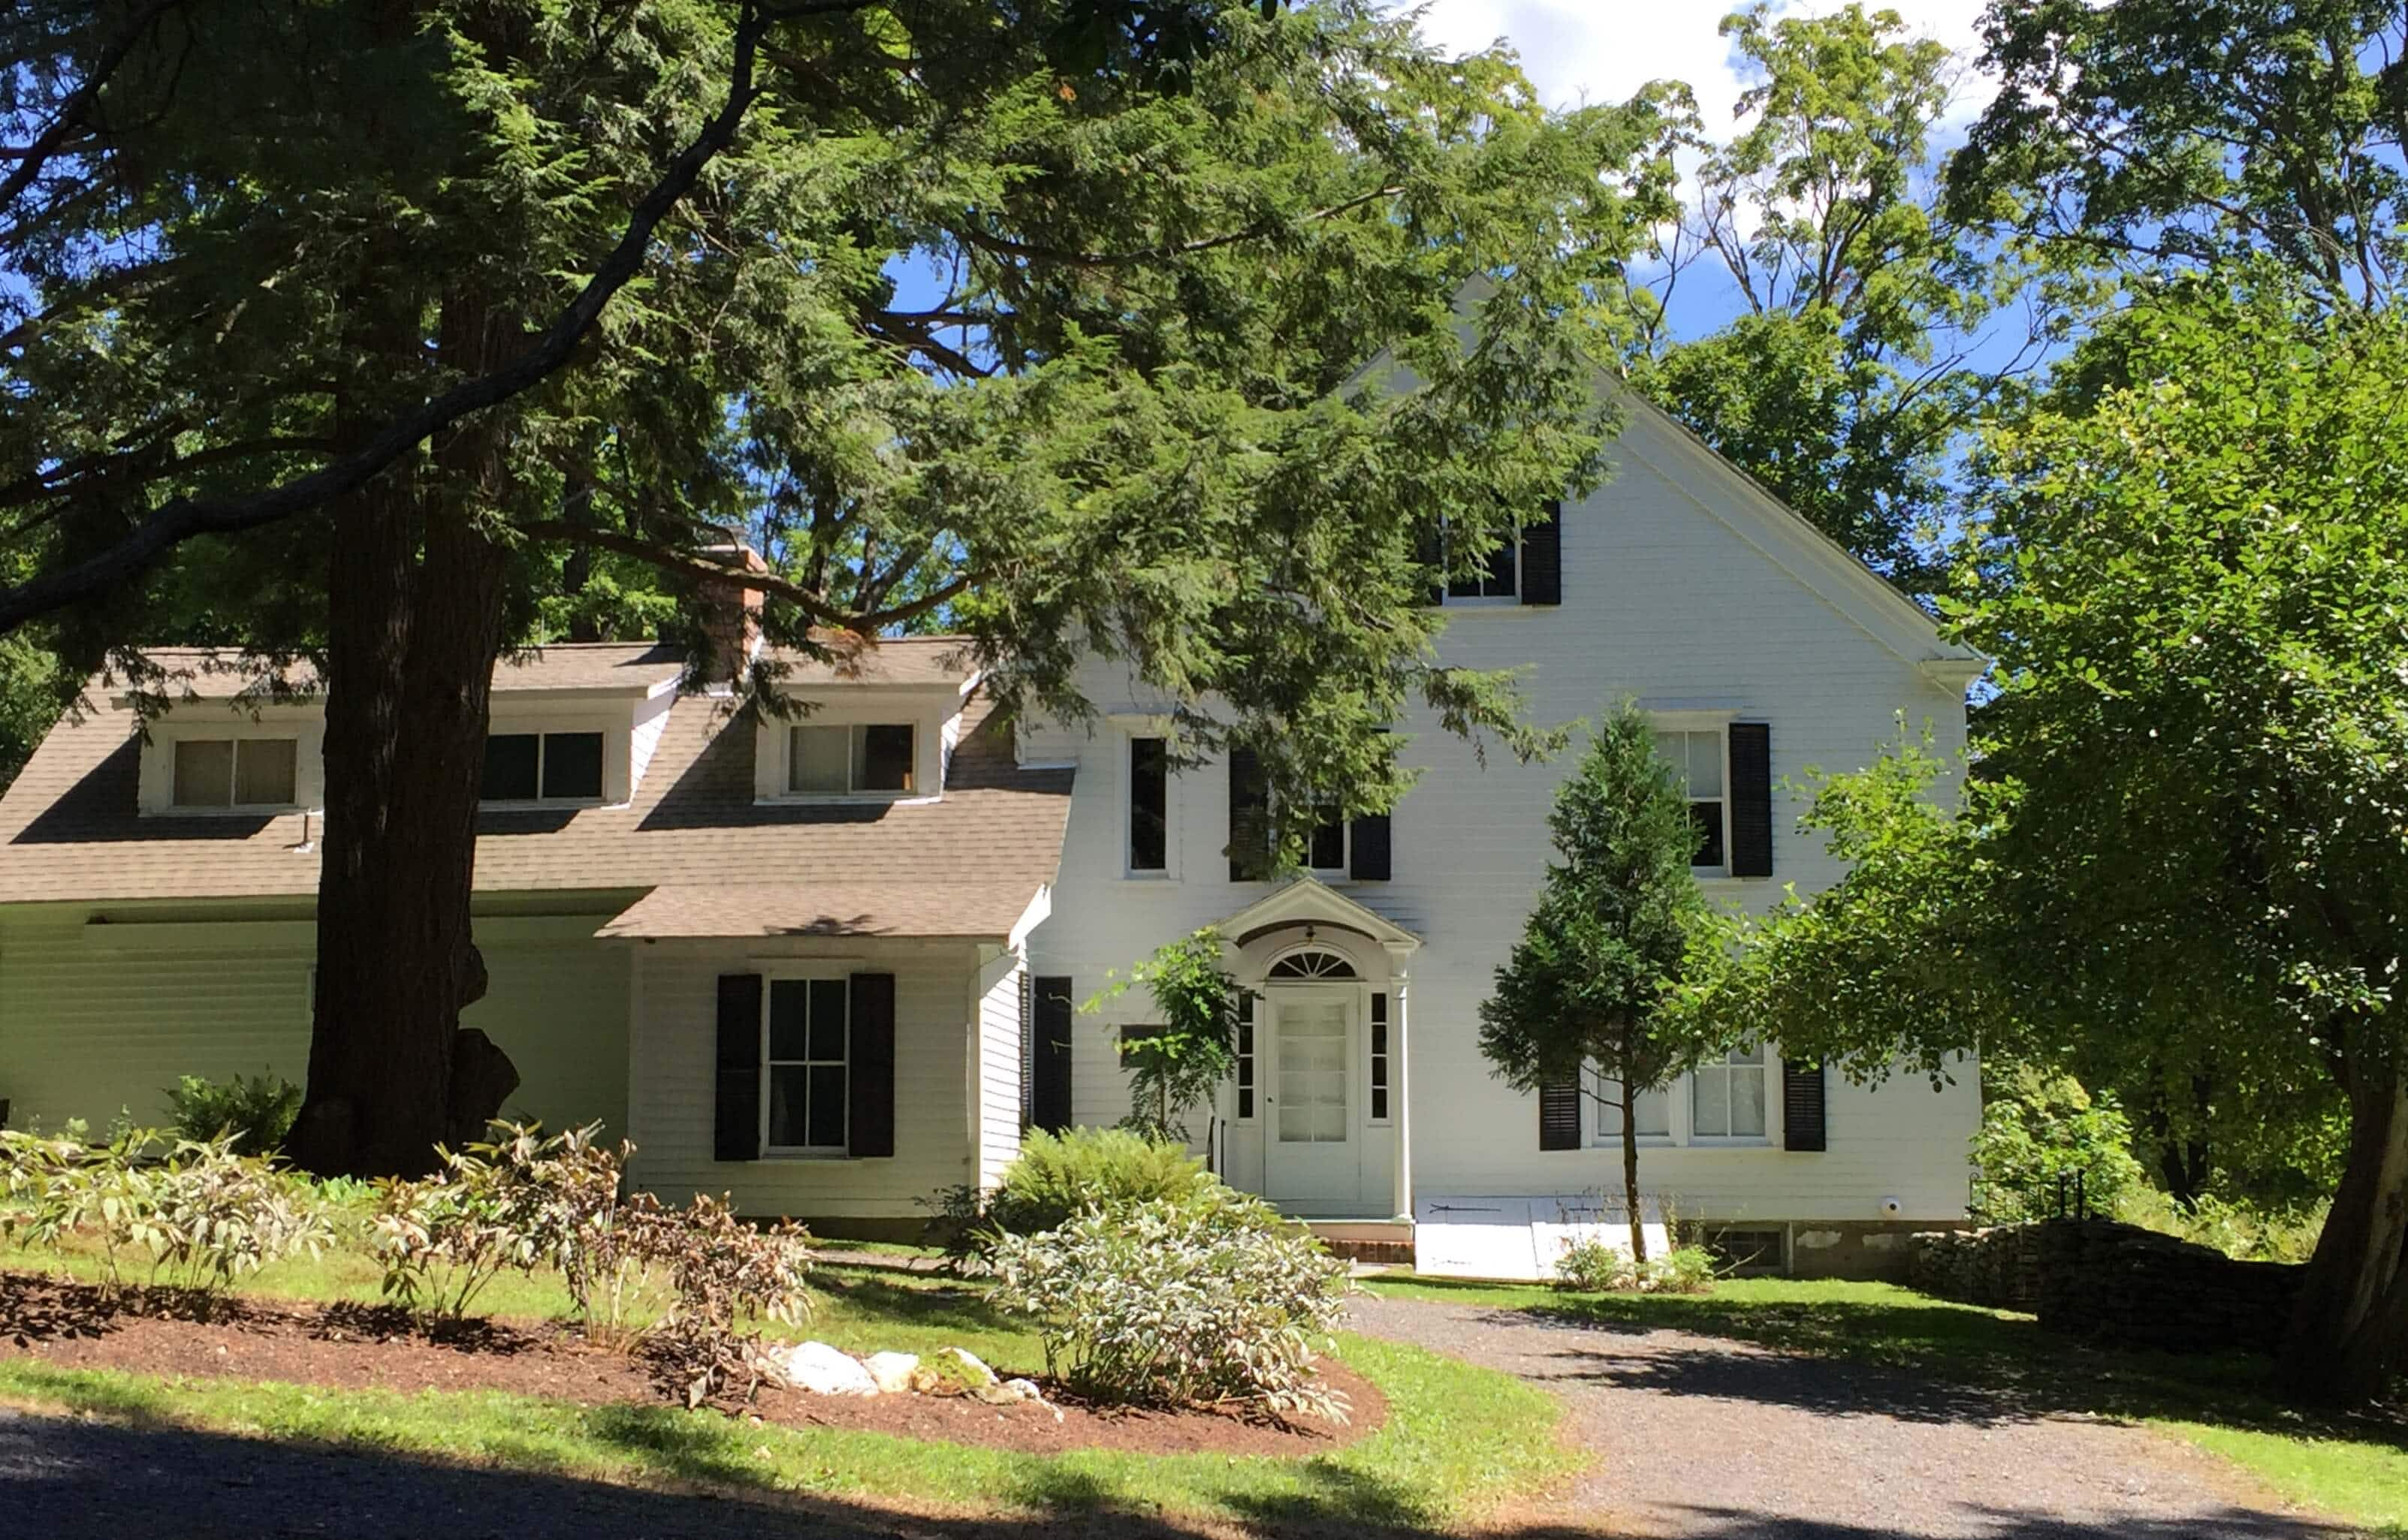 Campaign to save the home of Pulitzer Prize winner Edna St. Vincent Millay in New York